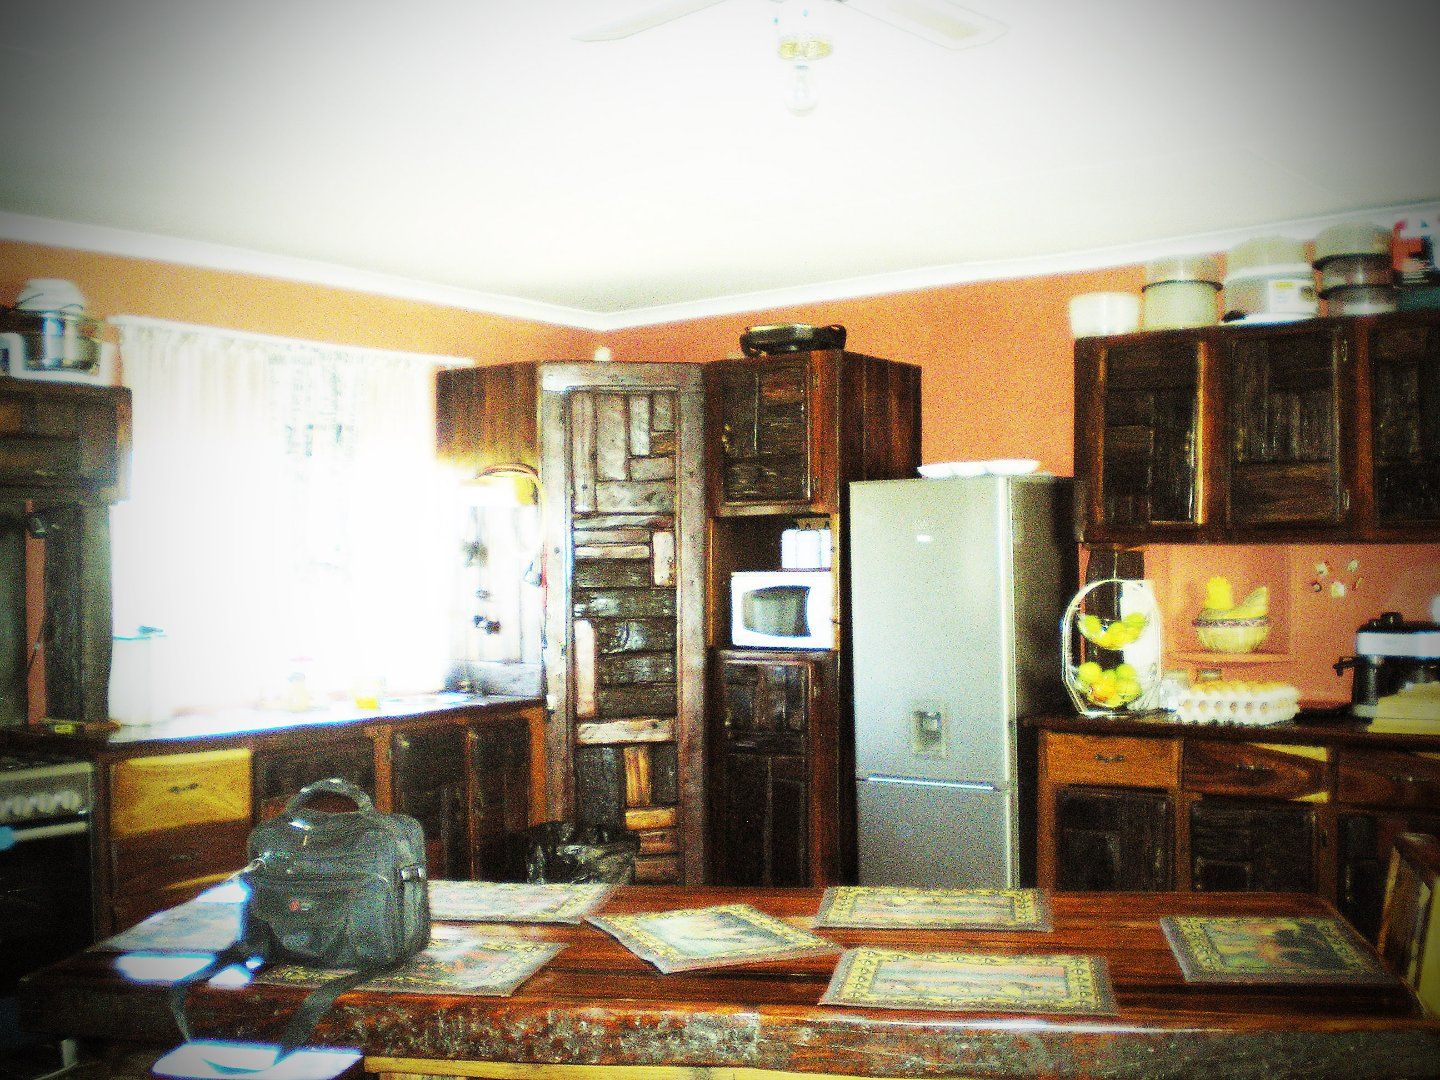 Tenacre A H property for sale. Ref No: 13677260. Picture no 9